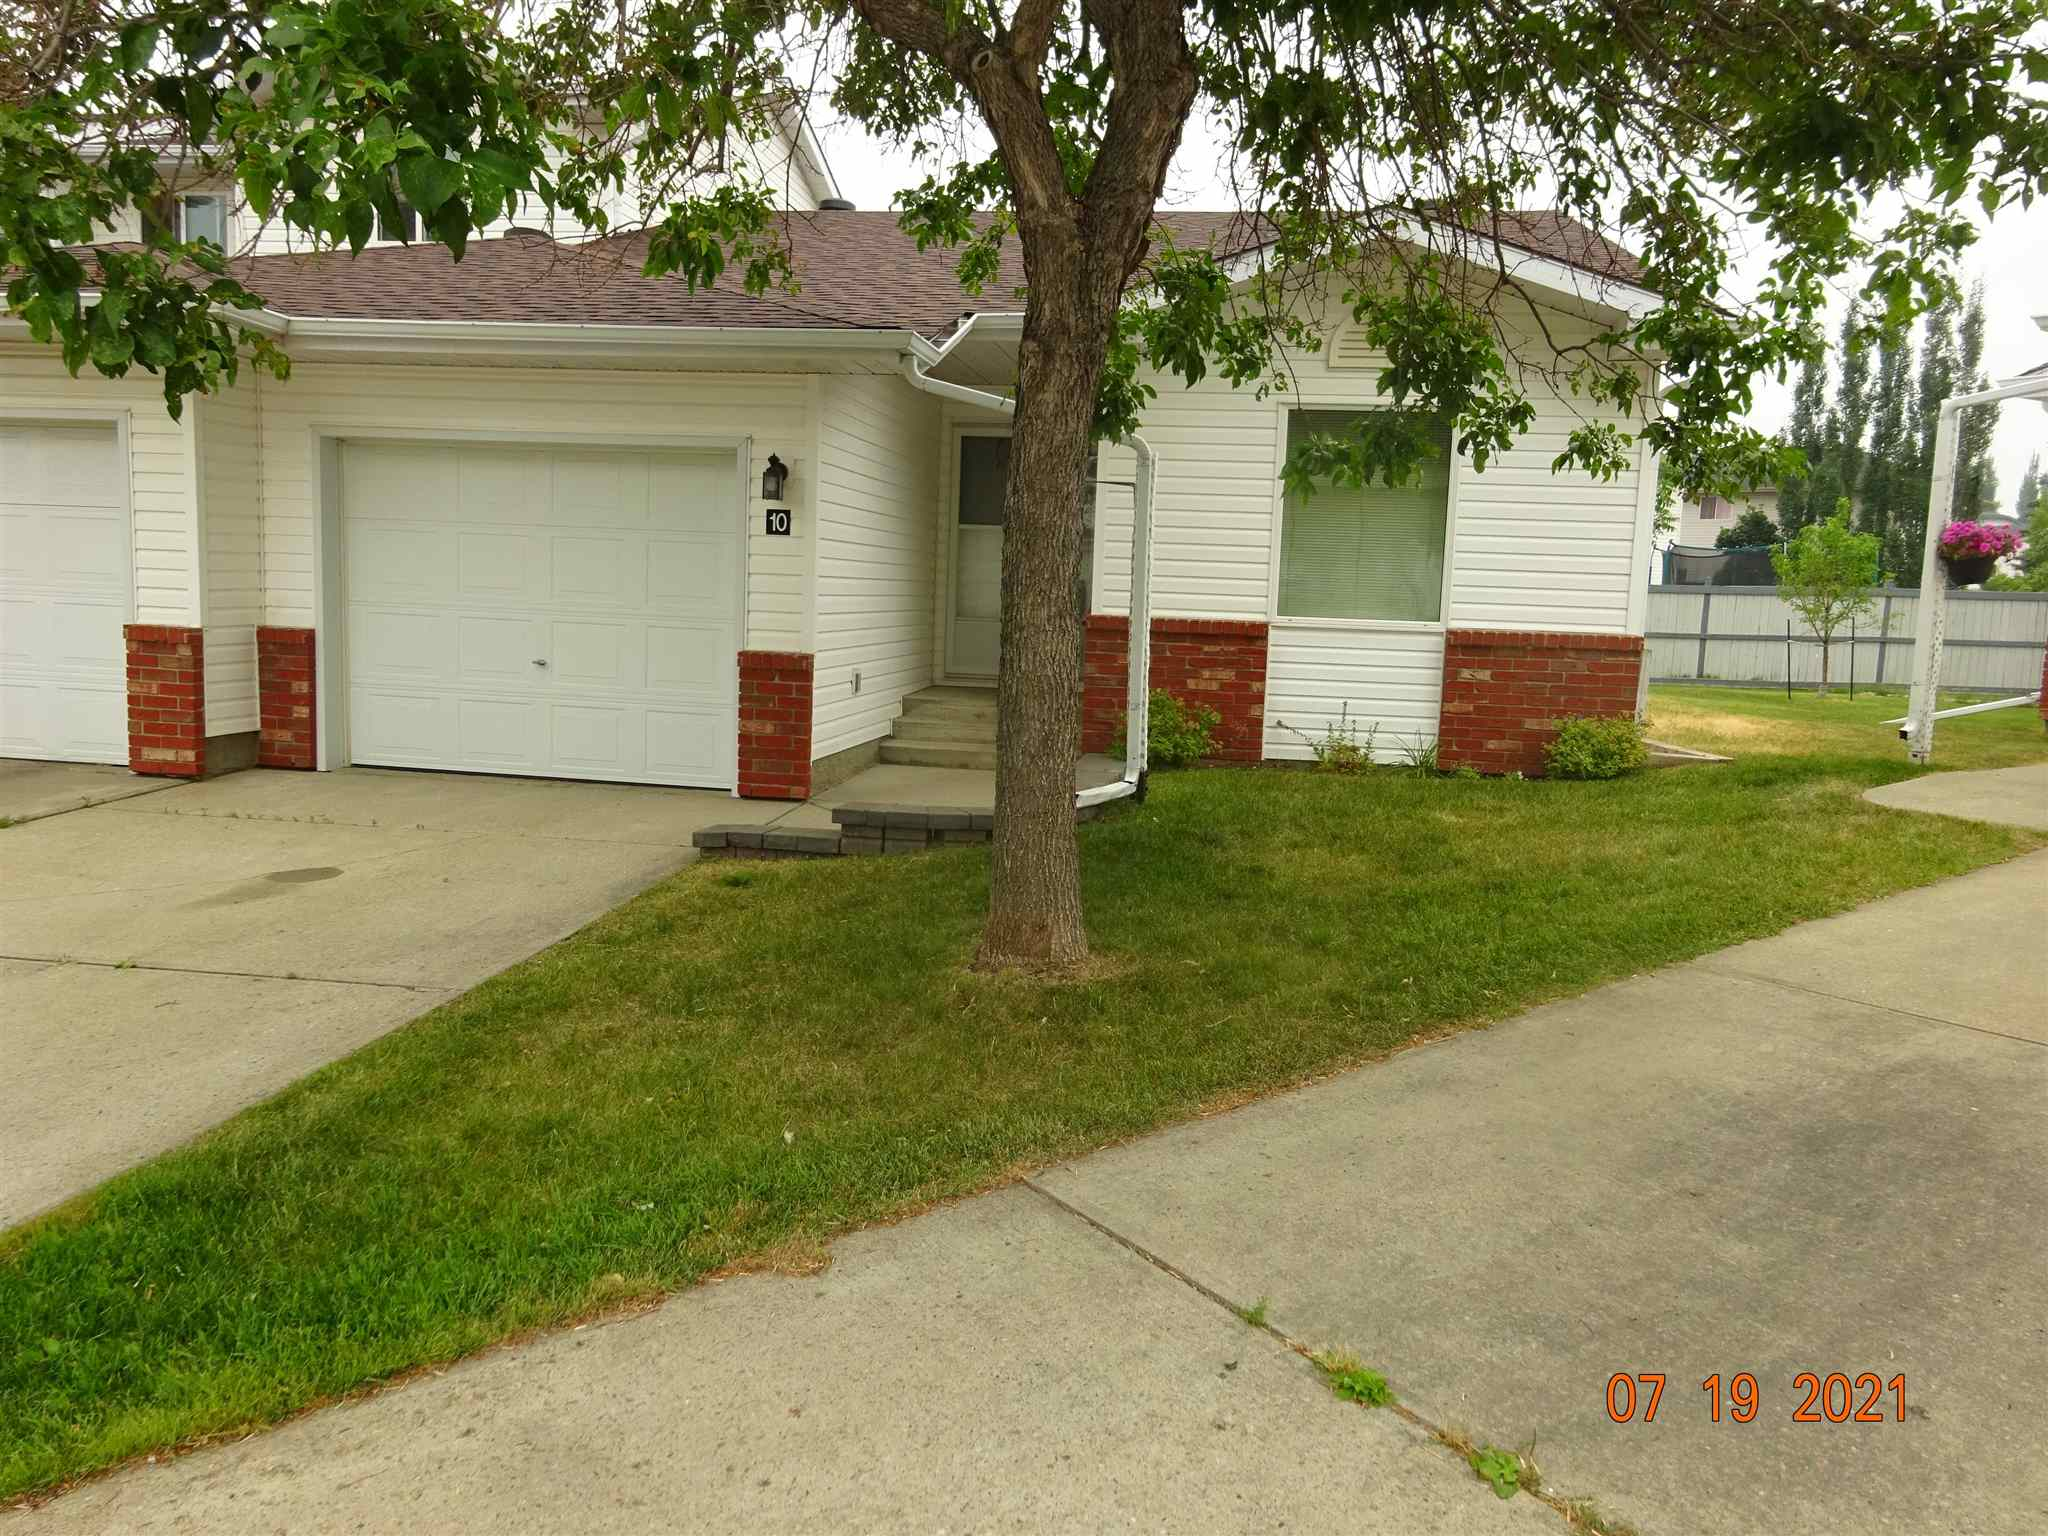 Nice Adult 2 BR bungalow with att'd garage and east exposure on the back. Spacious LR with laminate floors & a gas corner f/p. Light Oak kitchen with Fridge, stove, d/w, & hood fan - dinette adjoins kitchen & has laminate floors as well, Also has back door to yard.  Large MBR with 2 pc. bath and step in closet, 2nd BR is also a good size.  M/F laundry is in the hall closet on the way to garage entry to the house.  Basement is unfinished but it insulated and has roughed-in plumbing for another bath.  Mid efficient furnace and 10 yr. old h/w tank.  Roof has been reshingled.  There are carpets in both BR's.  New eaves troughs just installed July 23 & 24th.  Nice senior's type of floorplan.